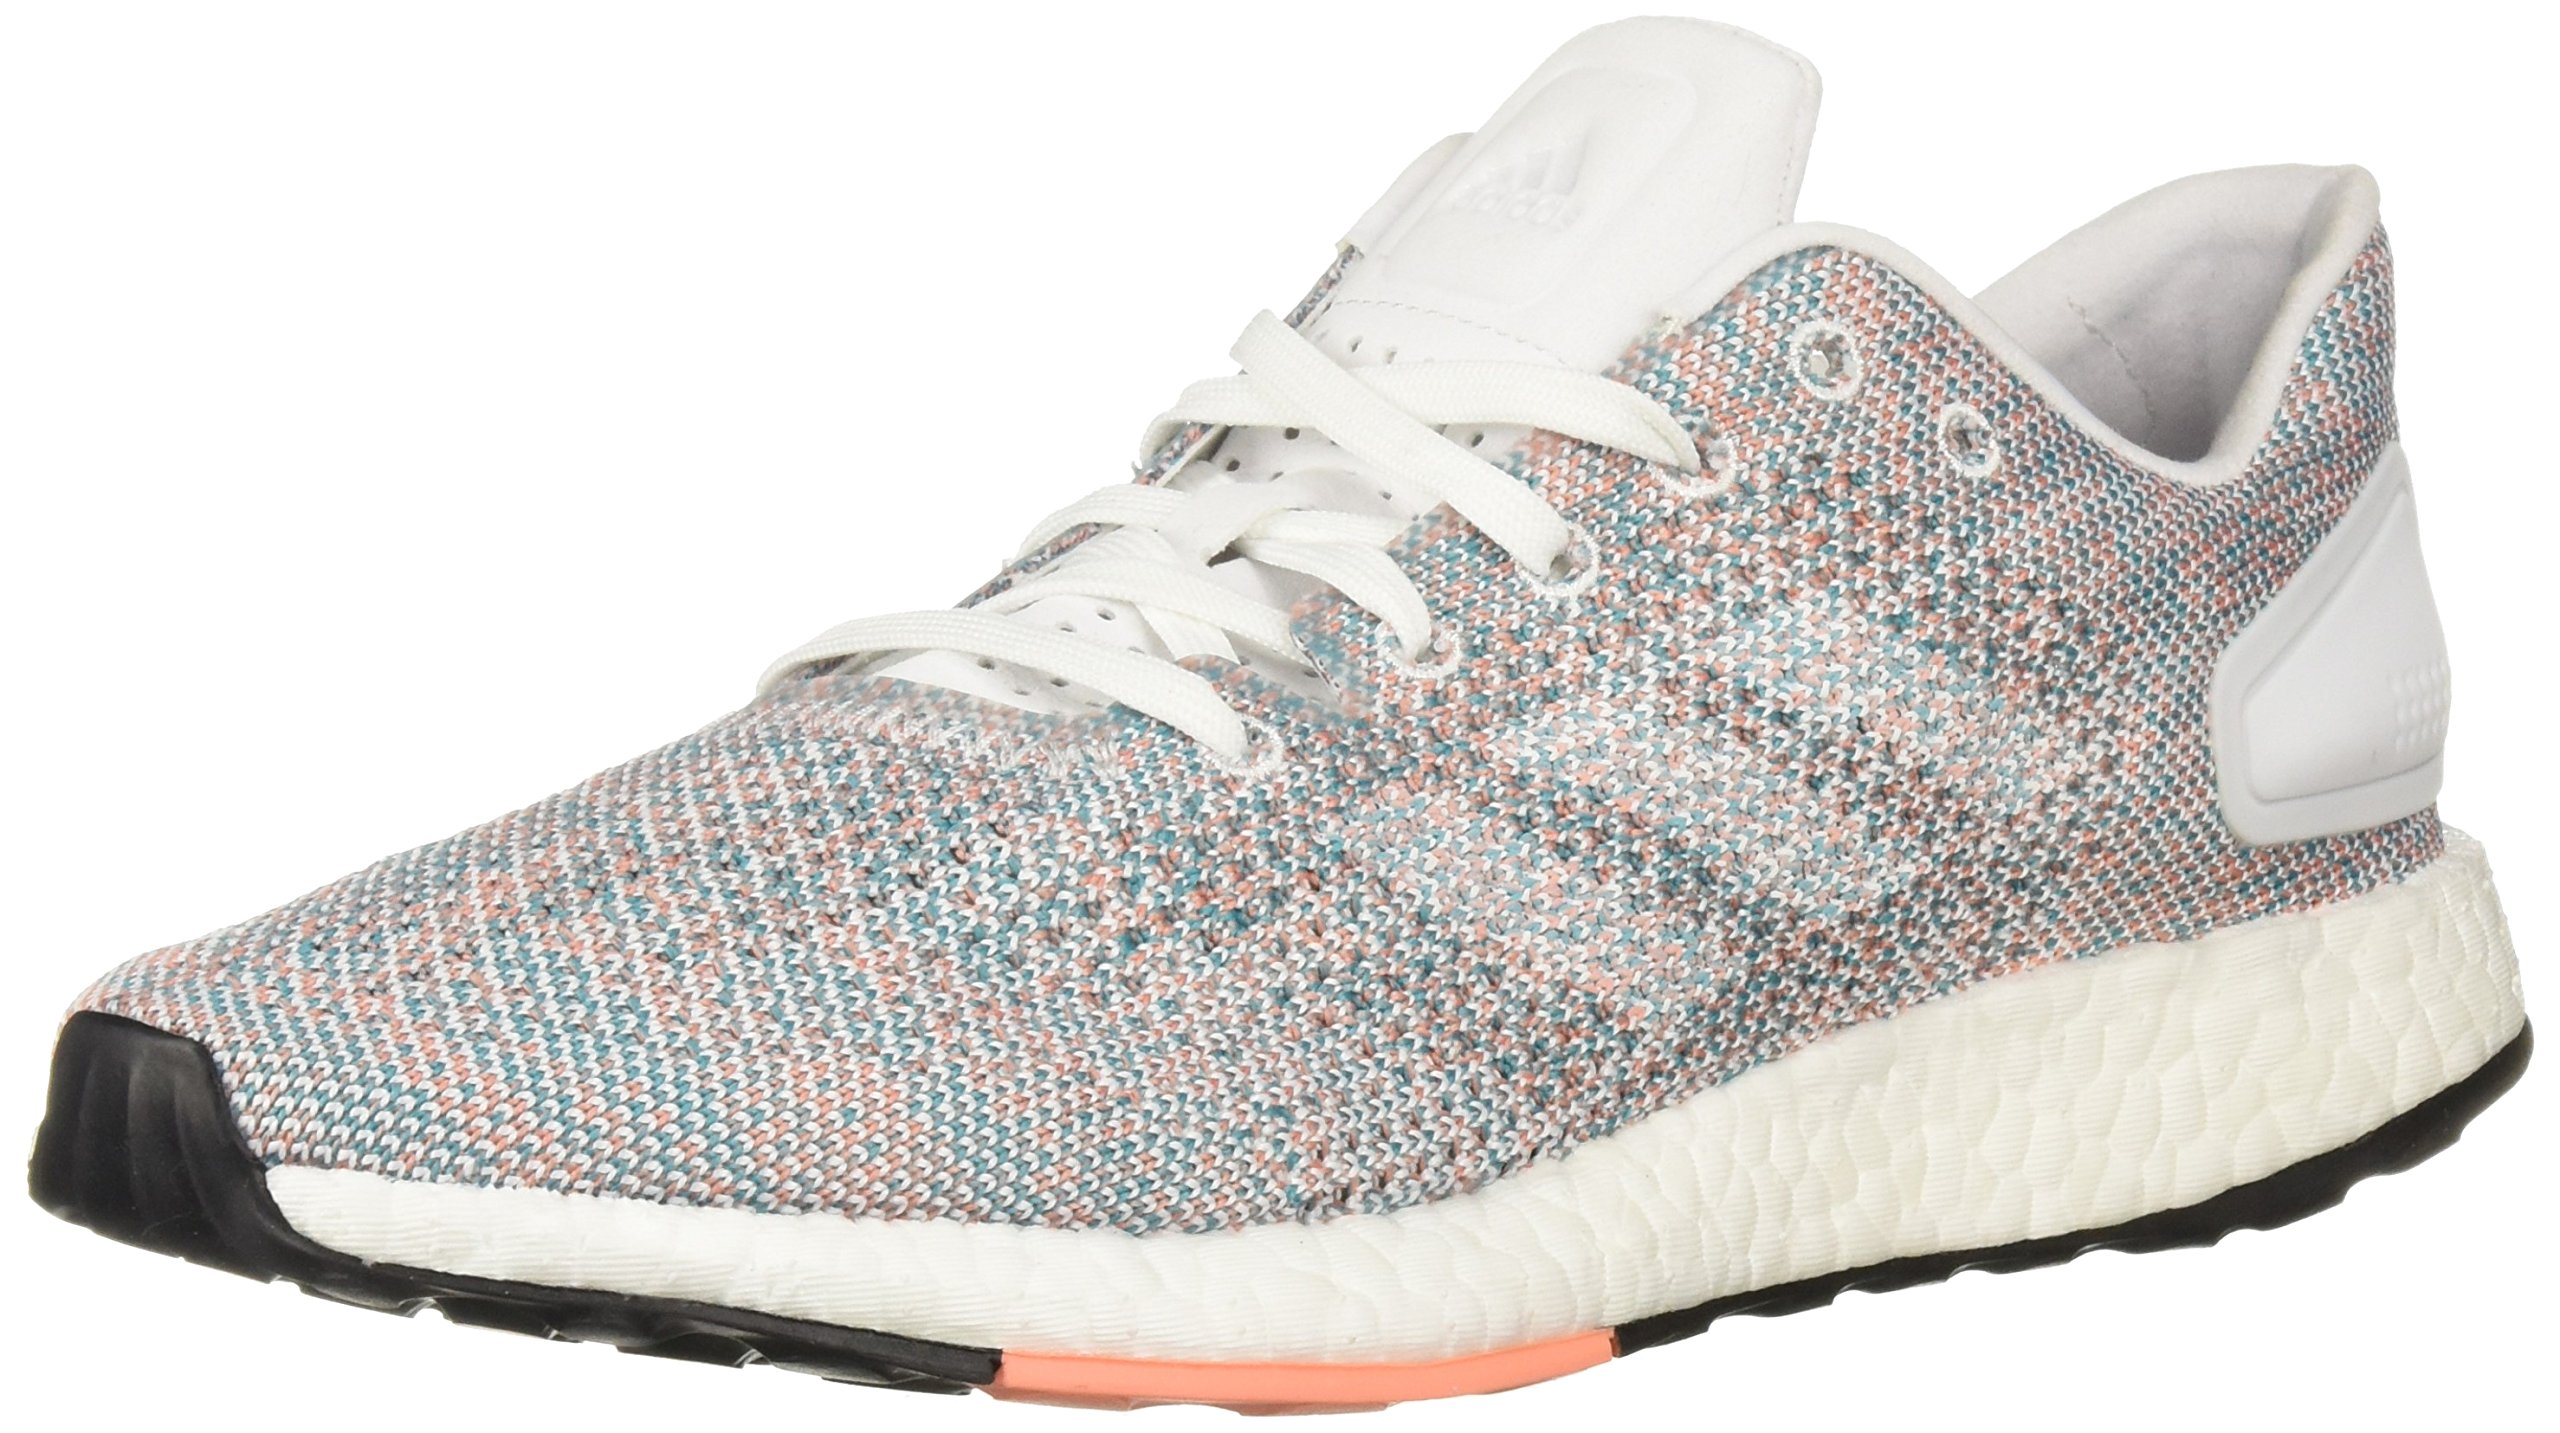 adidas Women's Pureboost DPR Running Shoes, White/Chalk Coral, 10.5 M US by adidas